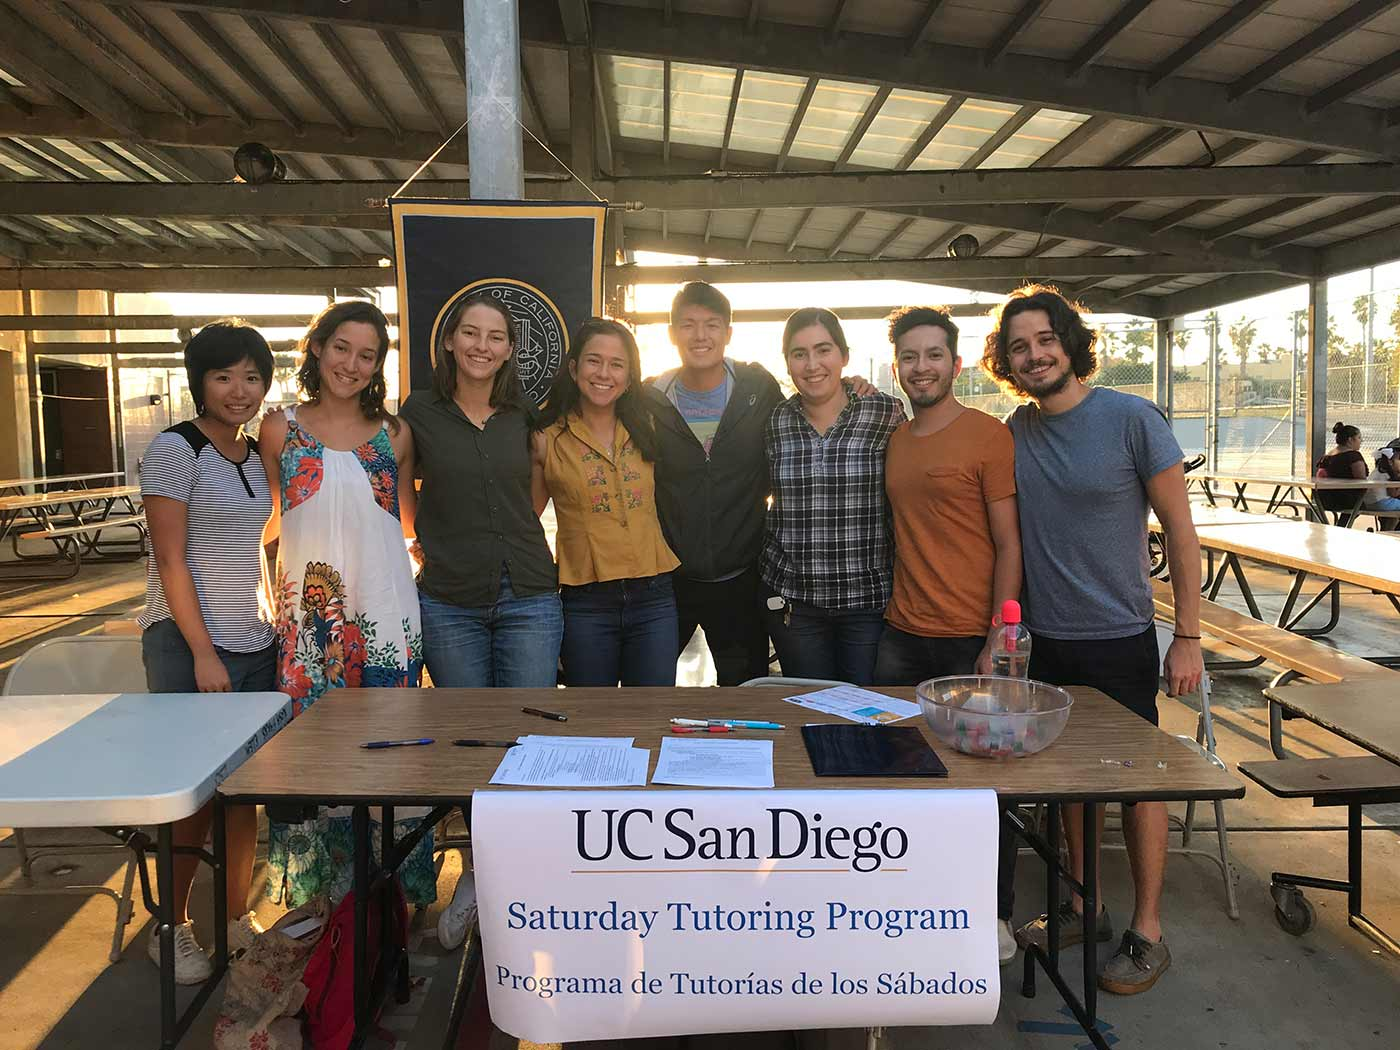 UC San Diego Saturday tutoring program in city heights